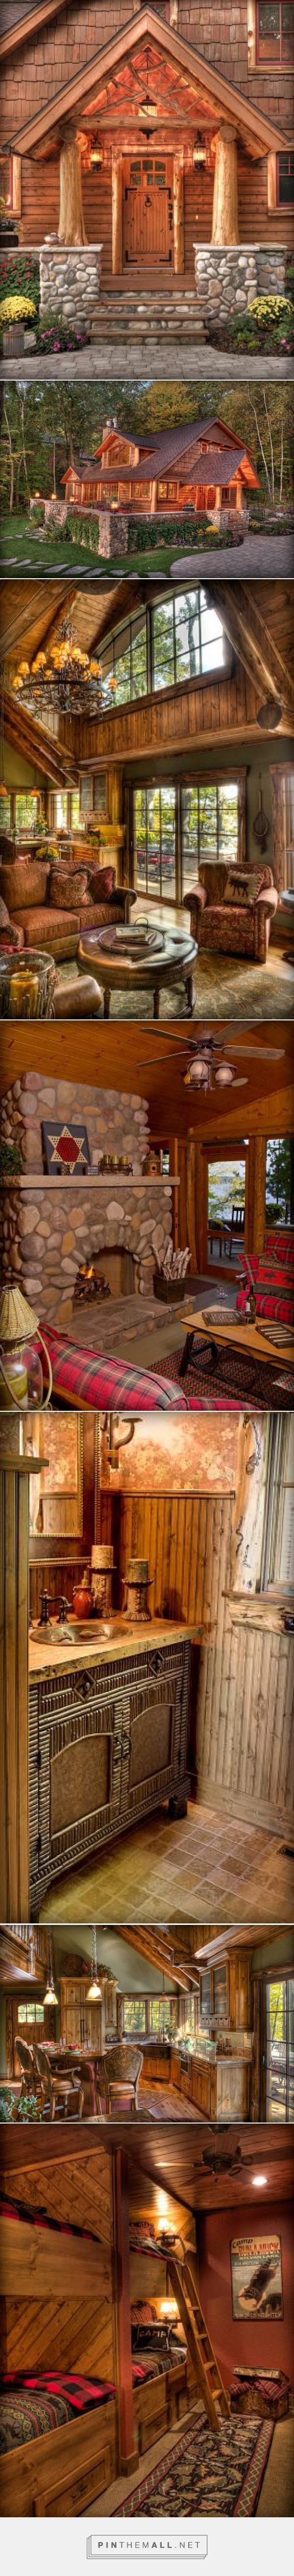 best 20 building a log cabin ideas on pinterest log cabin homes this house is ticking off all the boxes for me in what i want in a log home a grouped images picture home decor ideas this house is ticking off